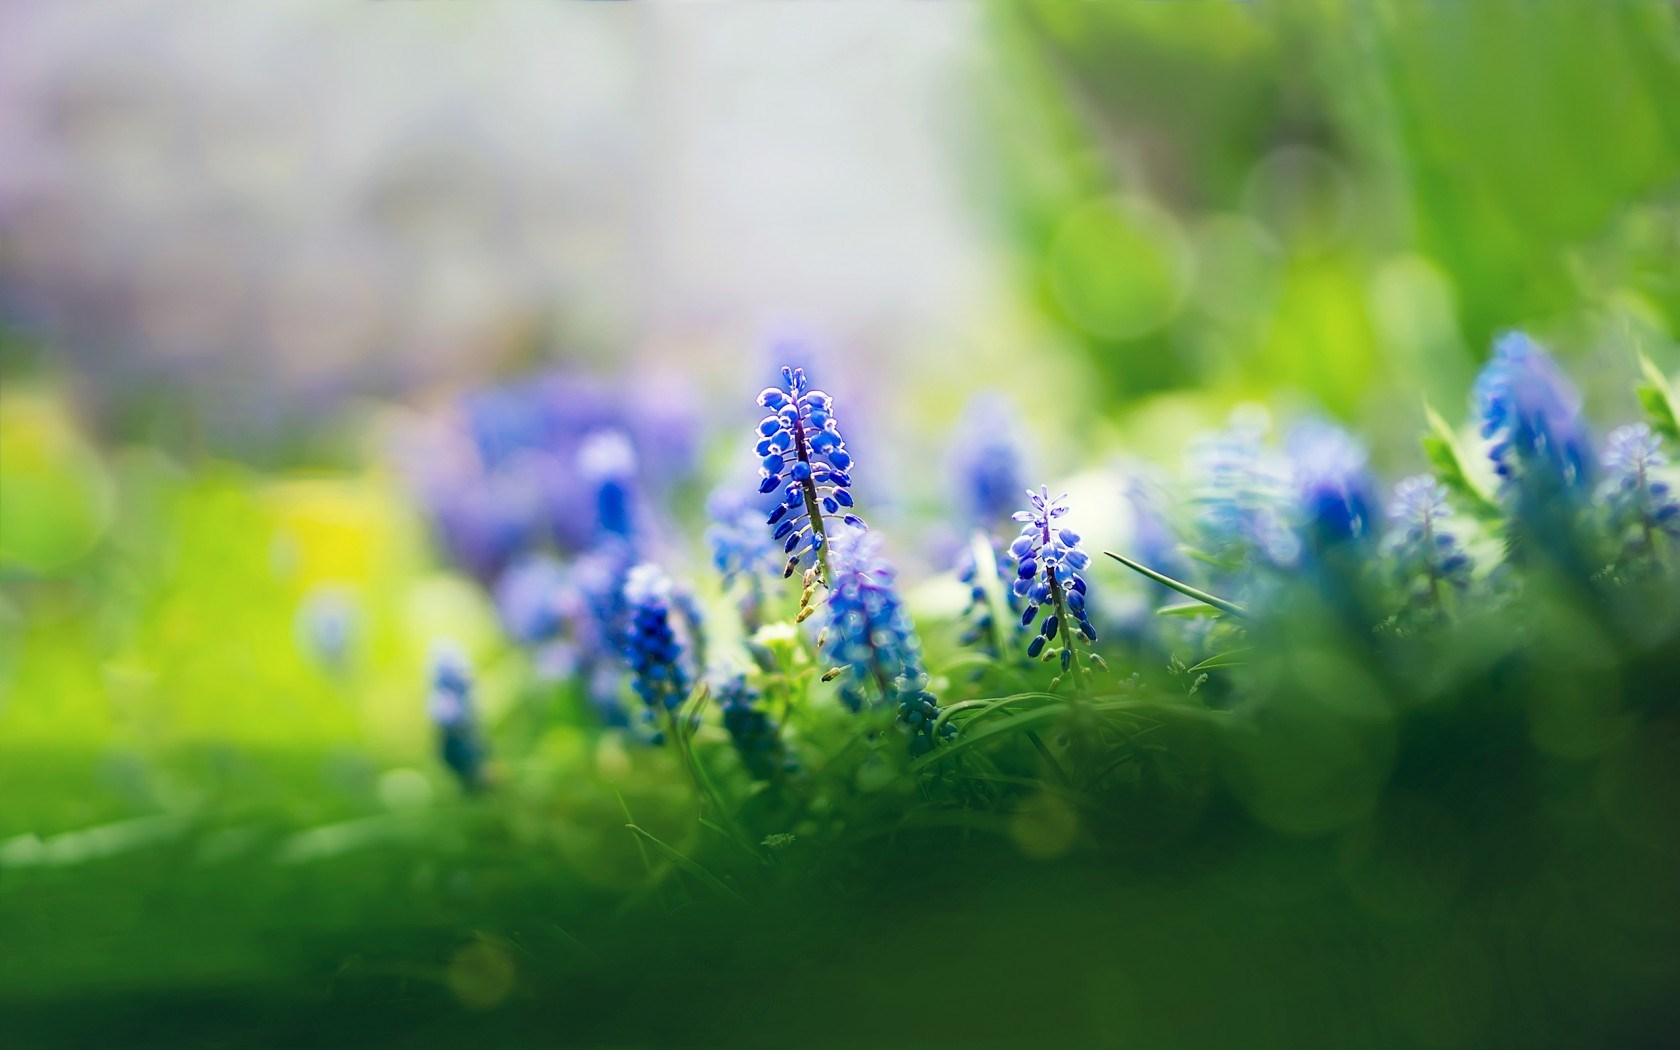 Muscari Flowers Focus Nature